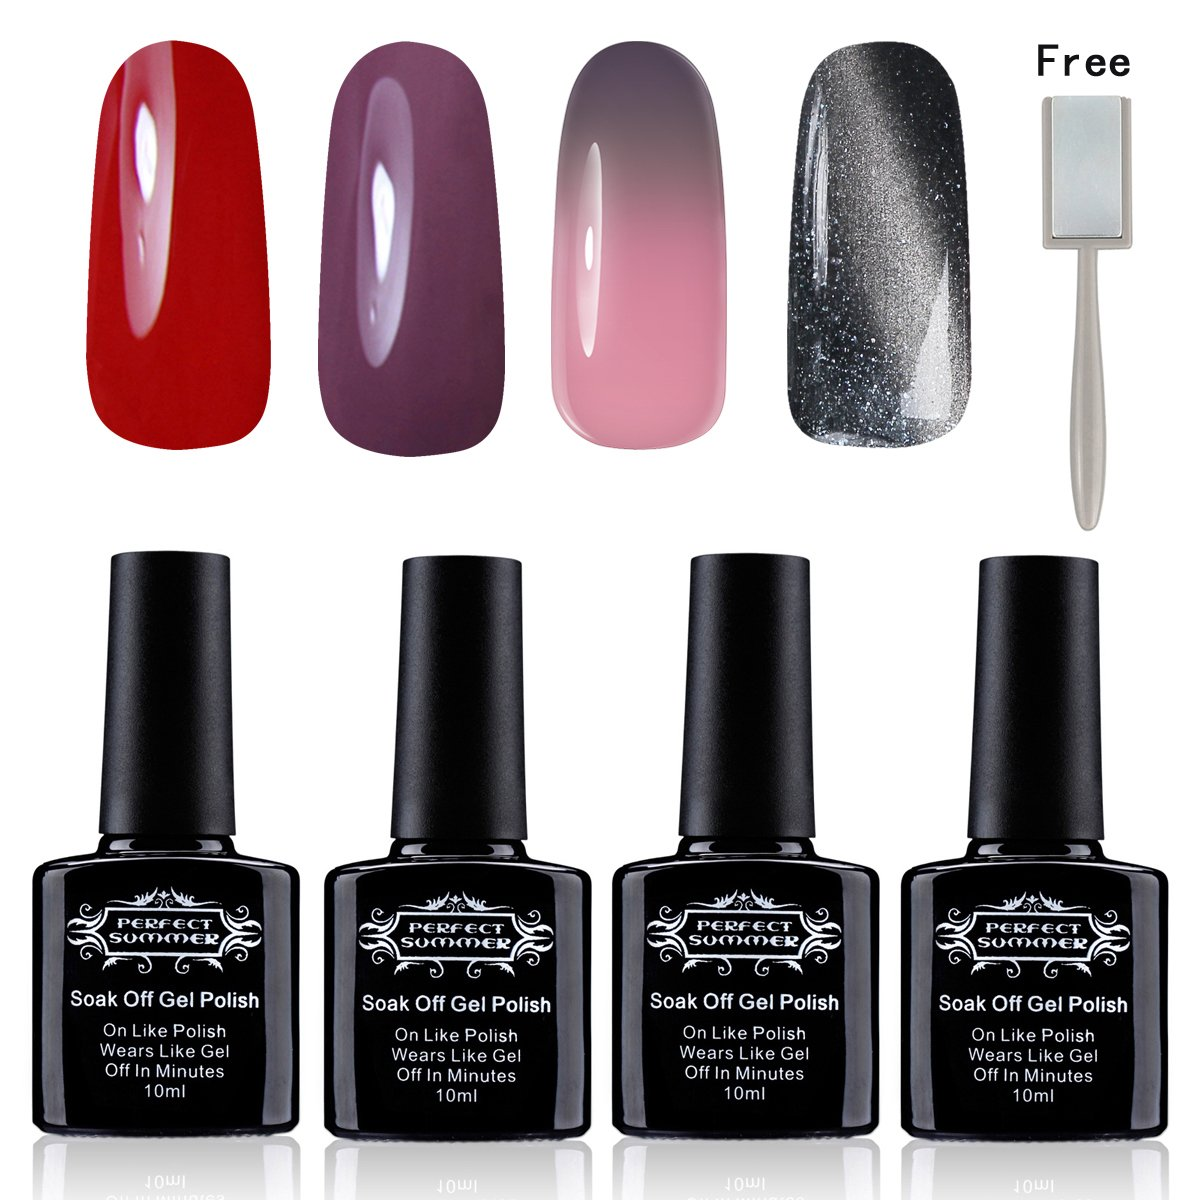 Perfect Summer Gel Nail Polish 4PCS Mixed Stypes Colors Varnish DIY Nail Starter Kits 002 Shun Yan Cosmetics. Ltd.